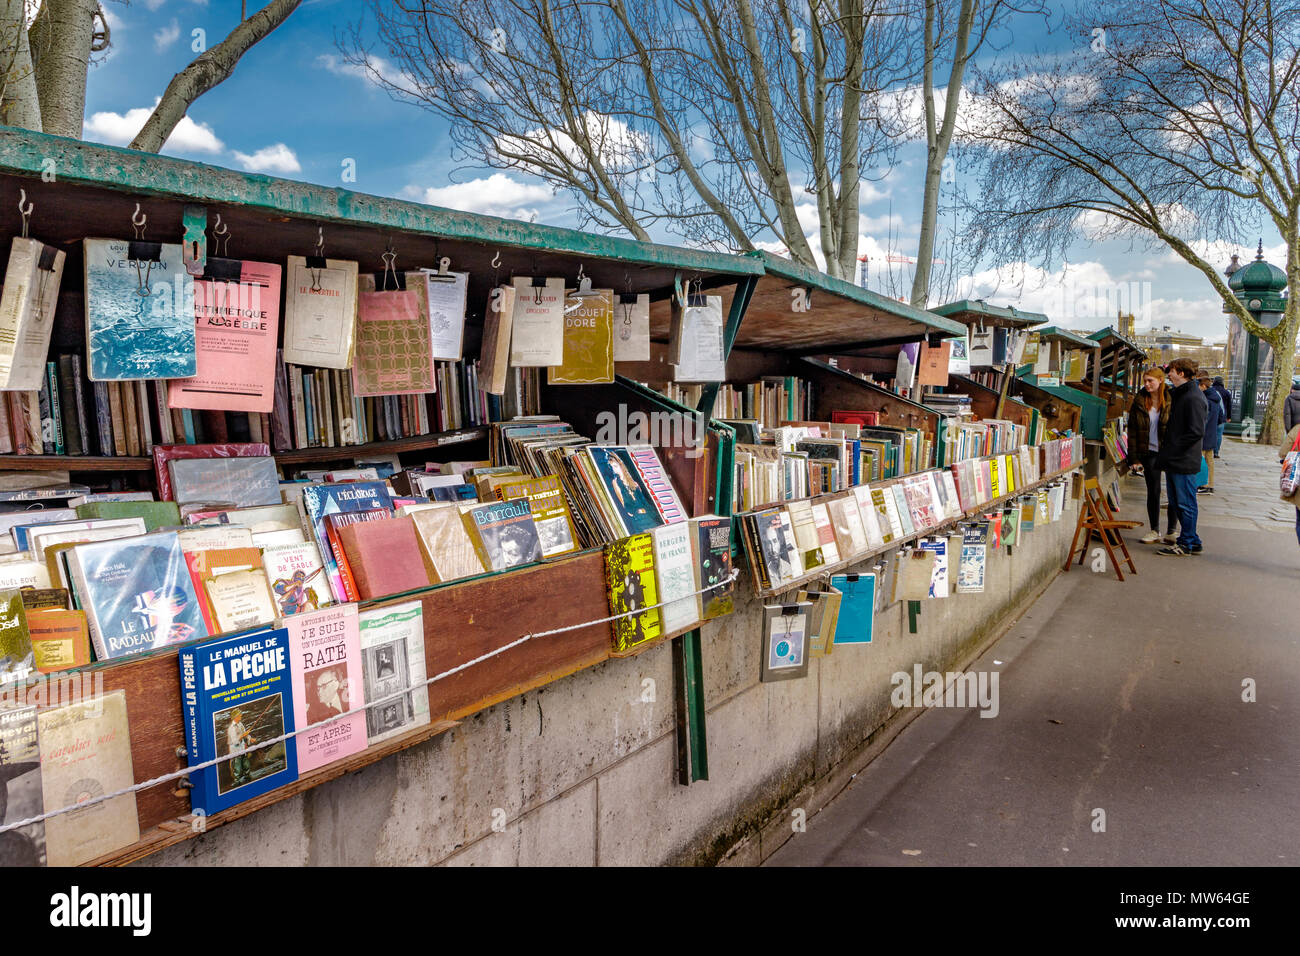 Riverside Bouquinistes ,green boxes selling second hand books along Quai Malaquais on the banks of The River Seine ,Paris ,France - Stock Image